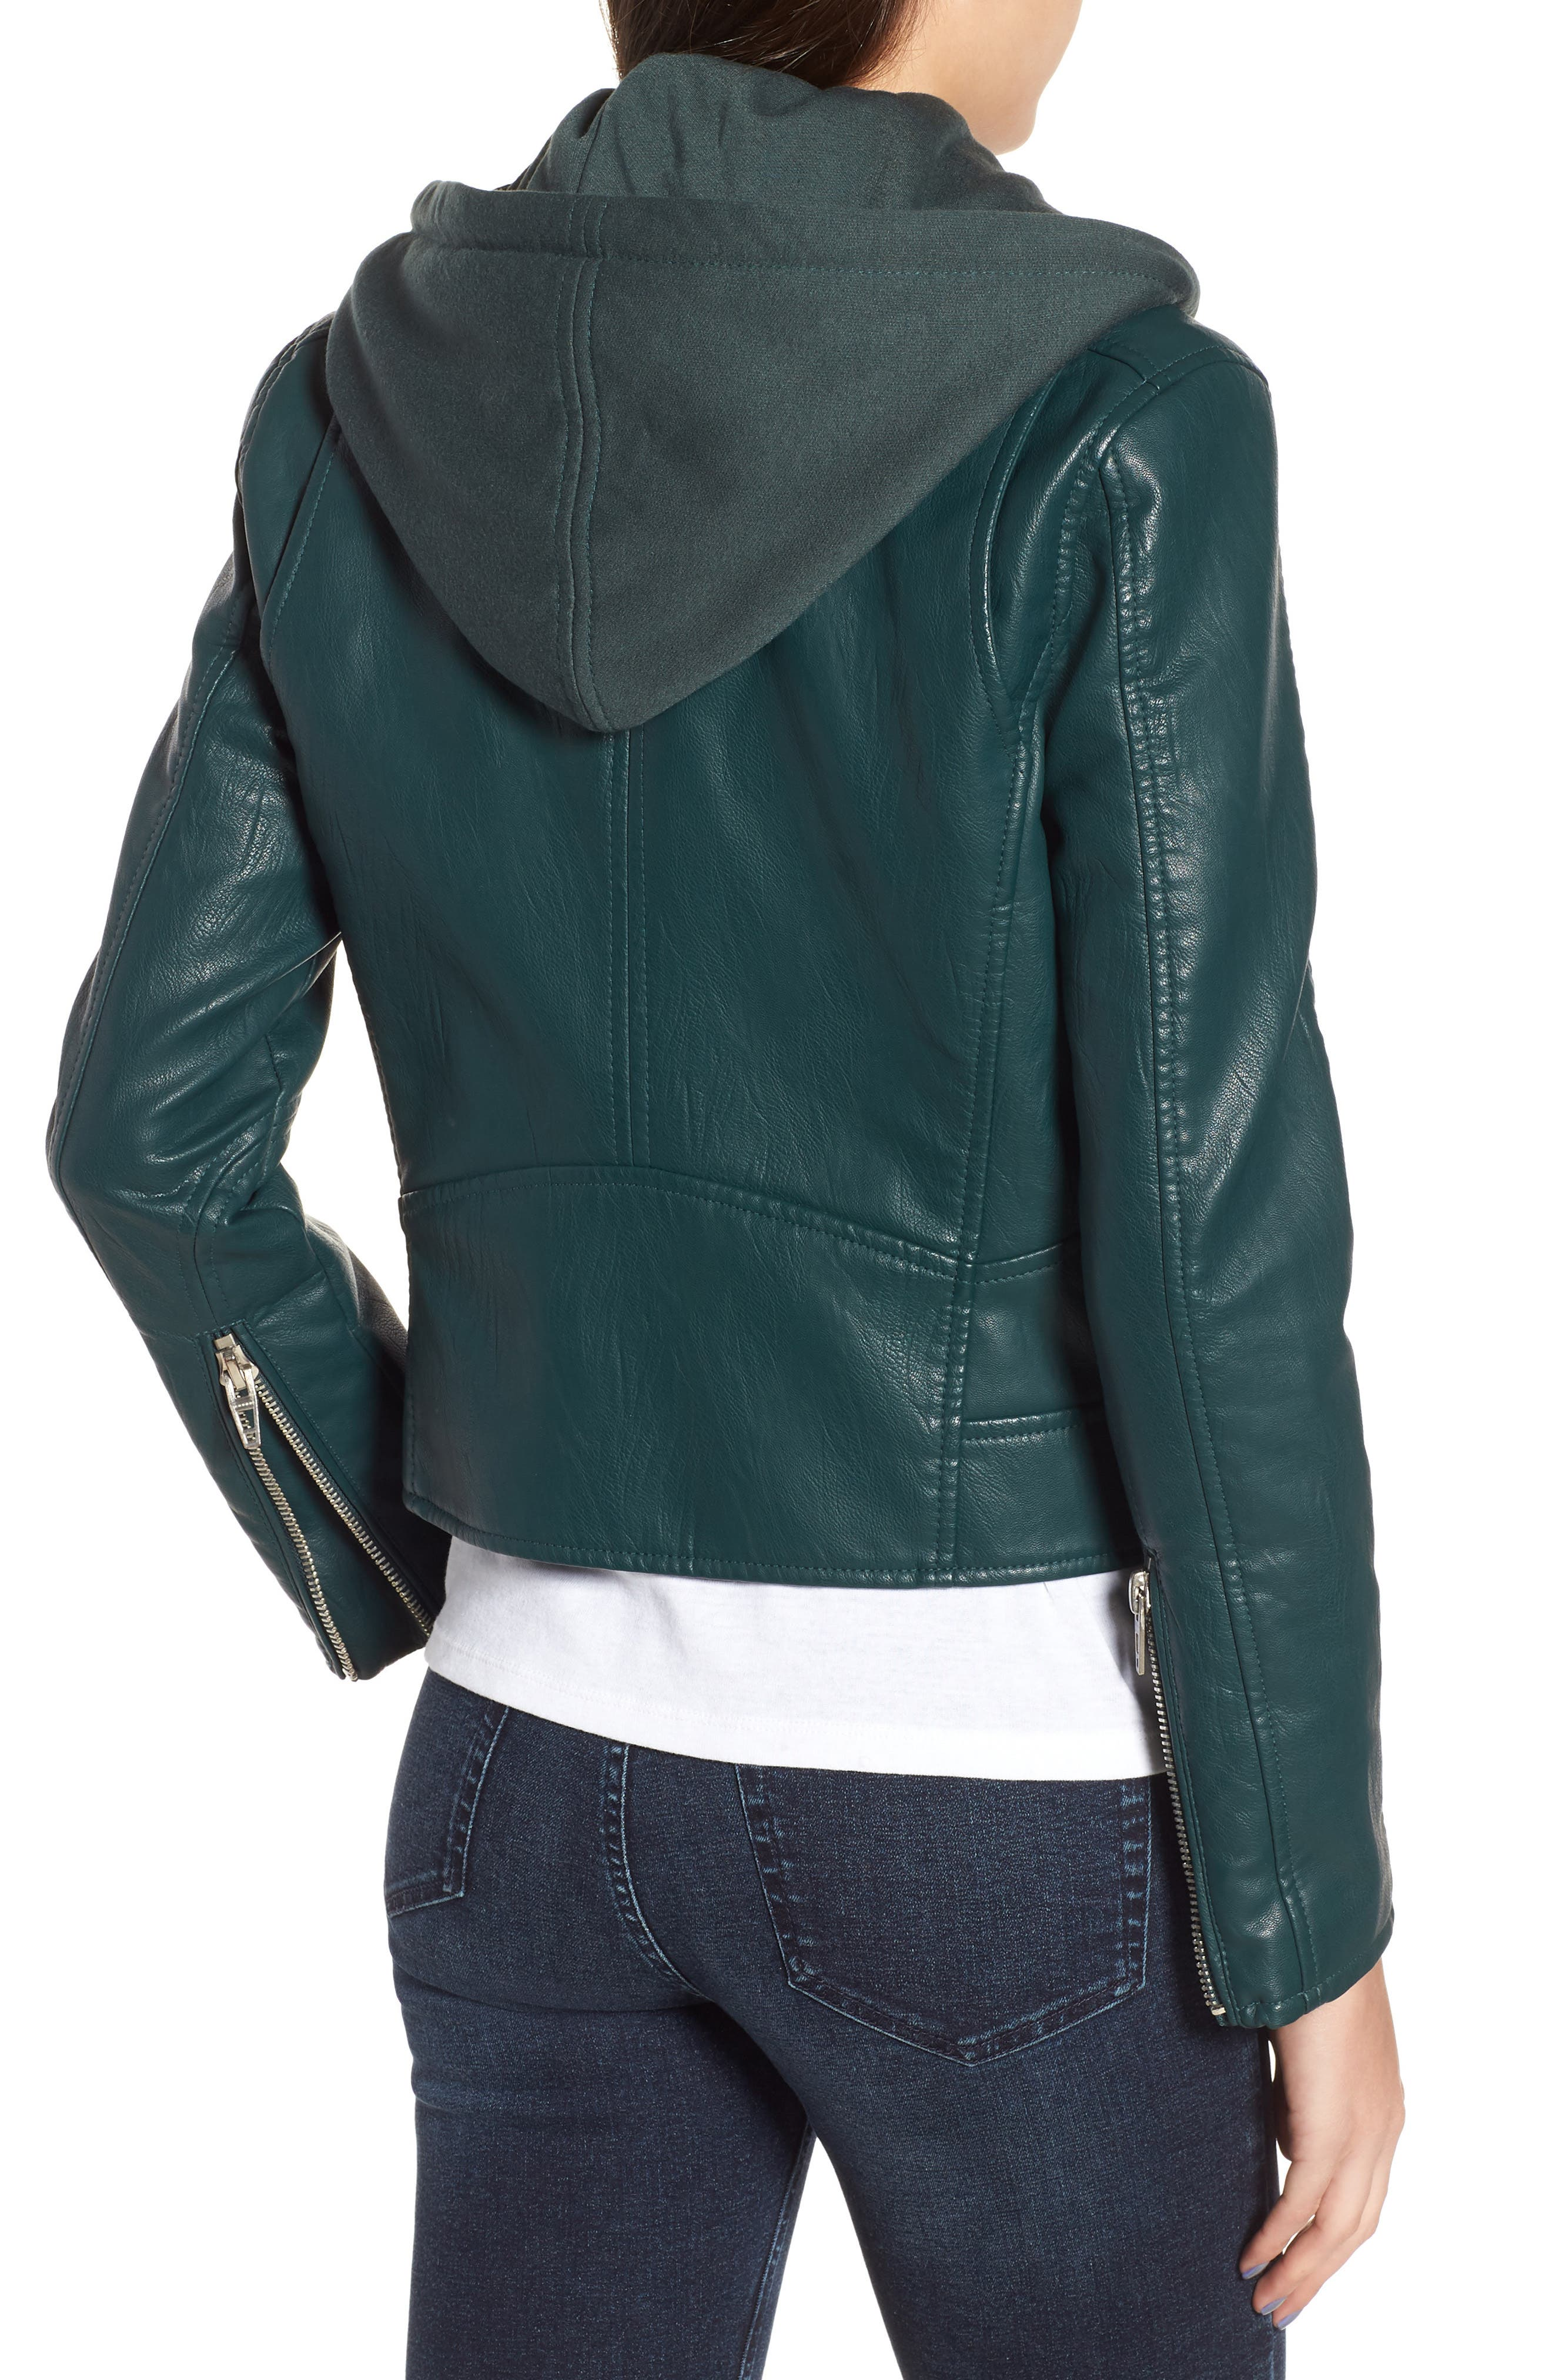 BLANKNYC, Meant to Be Moto Jacket with Removable Hood, Alternate thumbnail 2, color, EVERGREEN